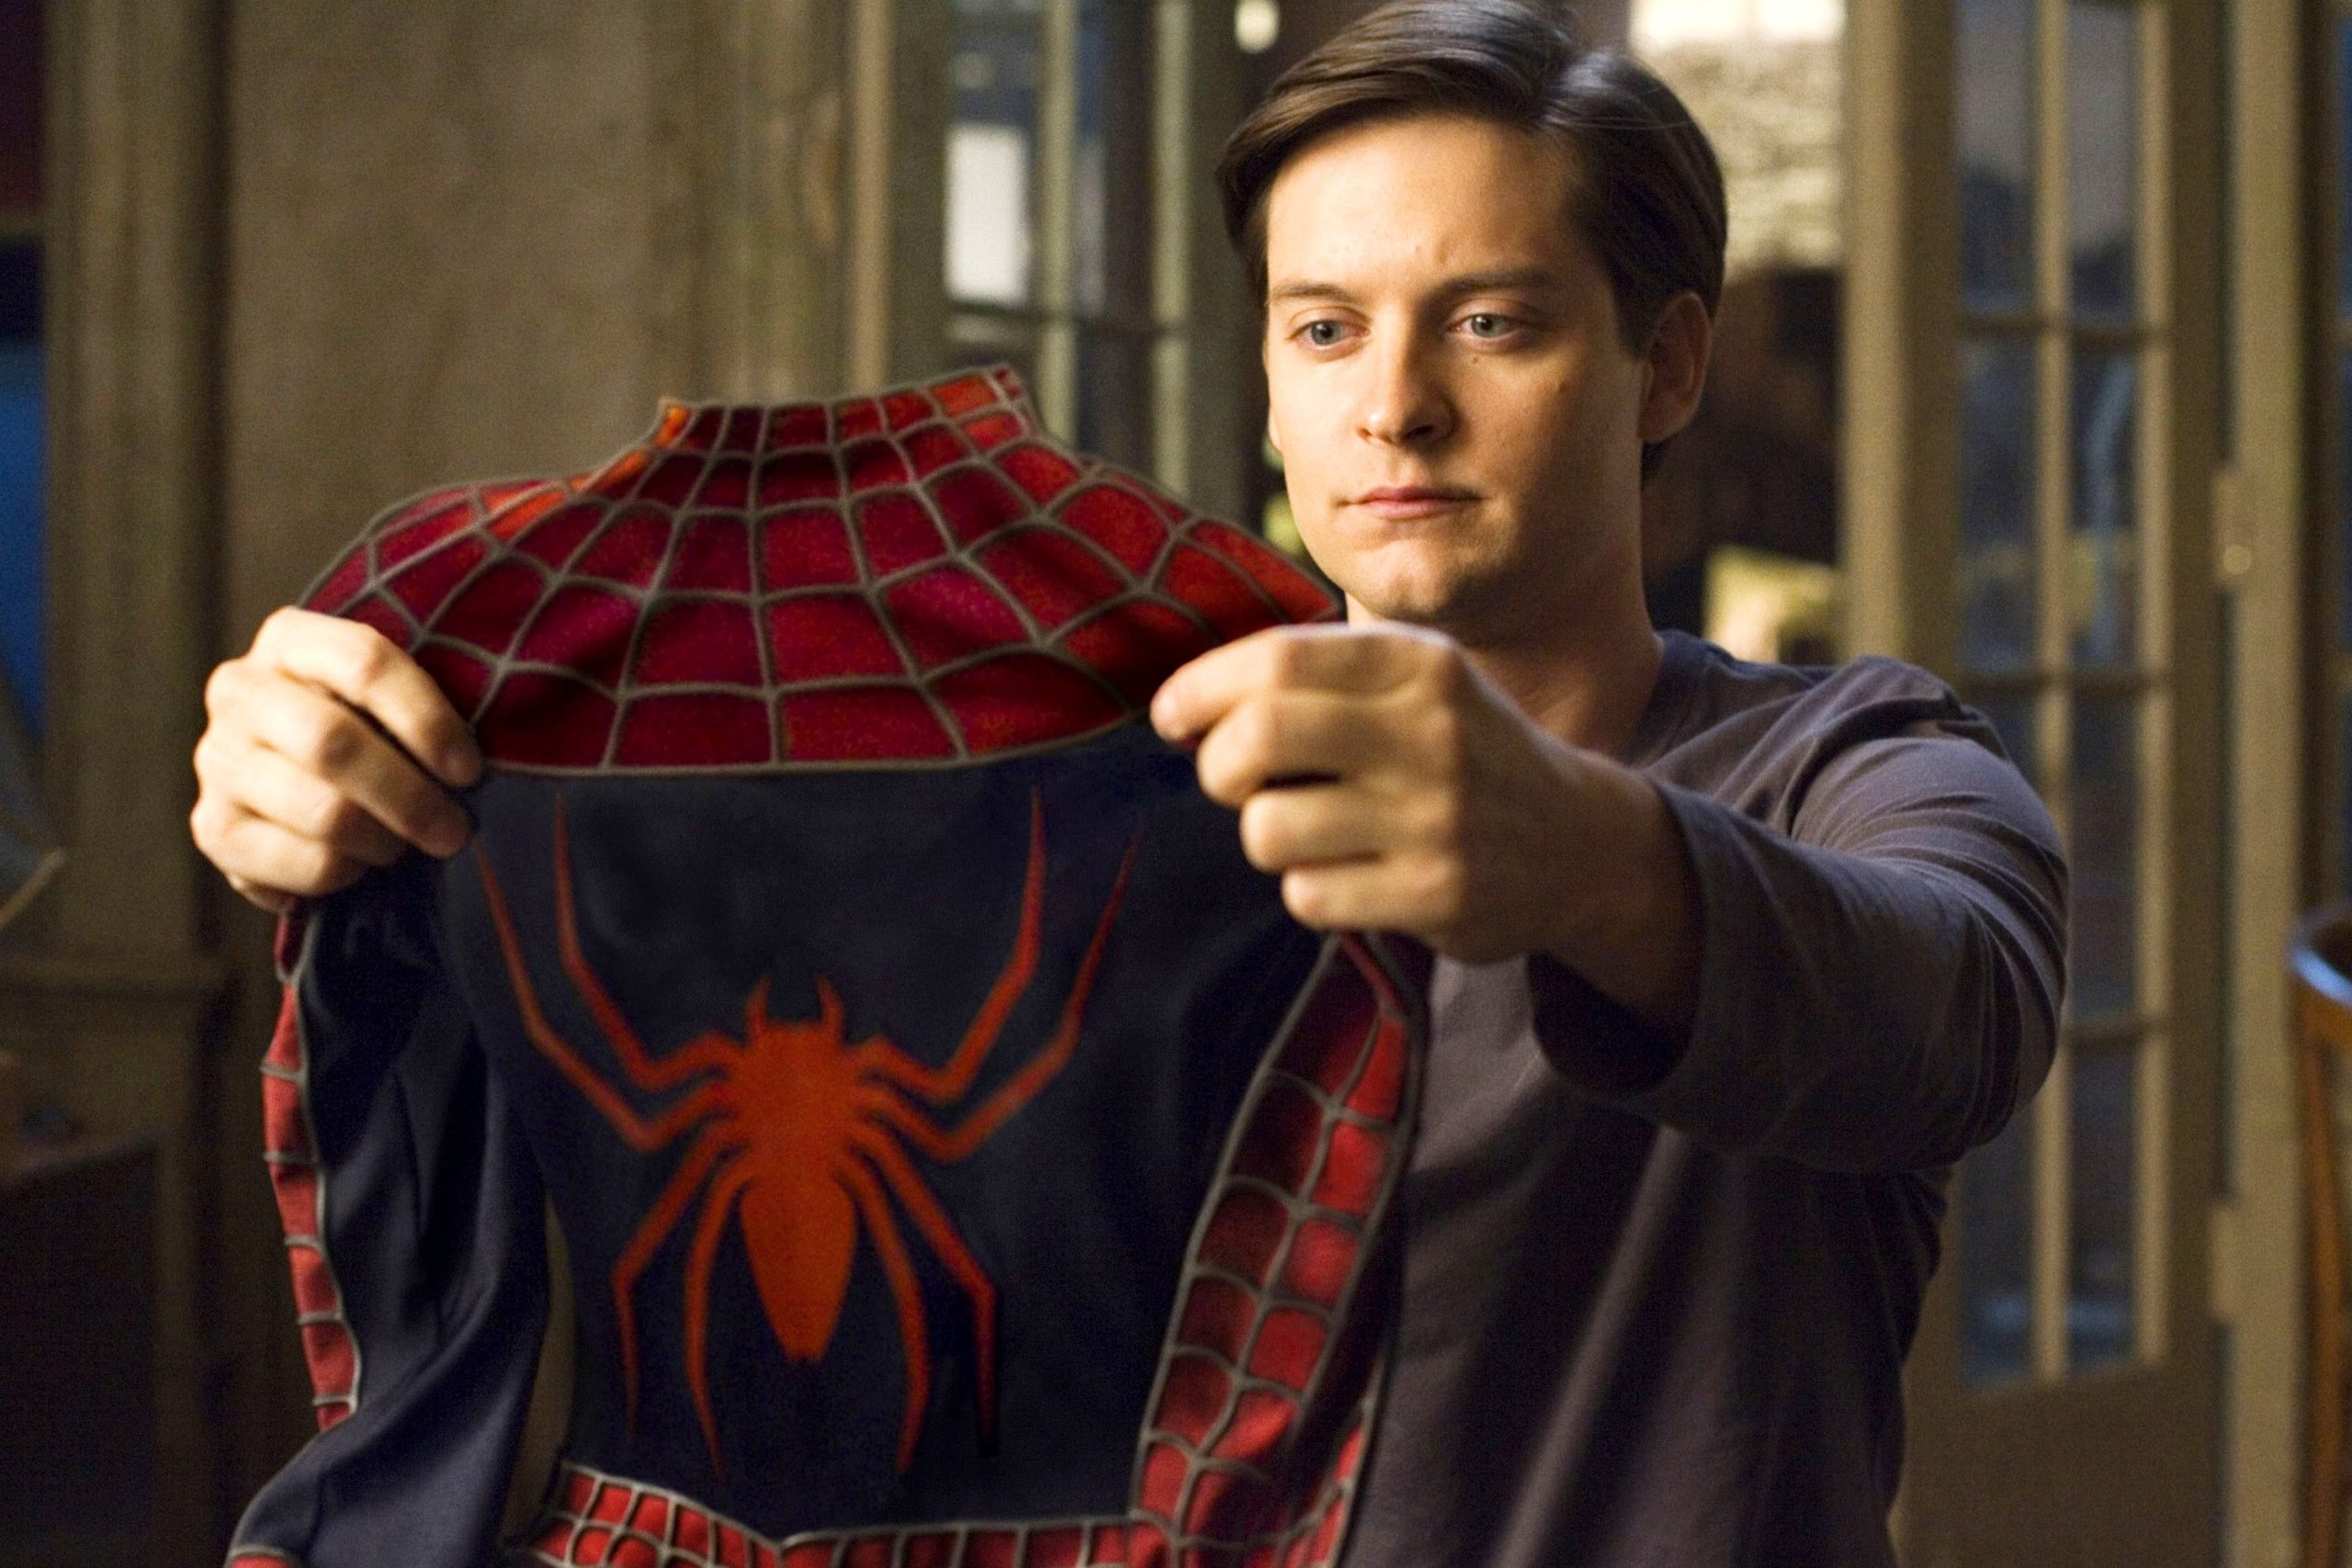 Spider-Man 3: We Have A Potential Opponent For Peter Parker